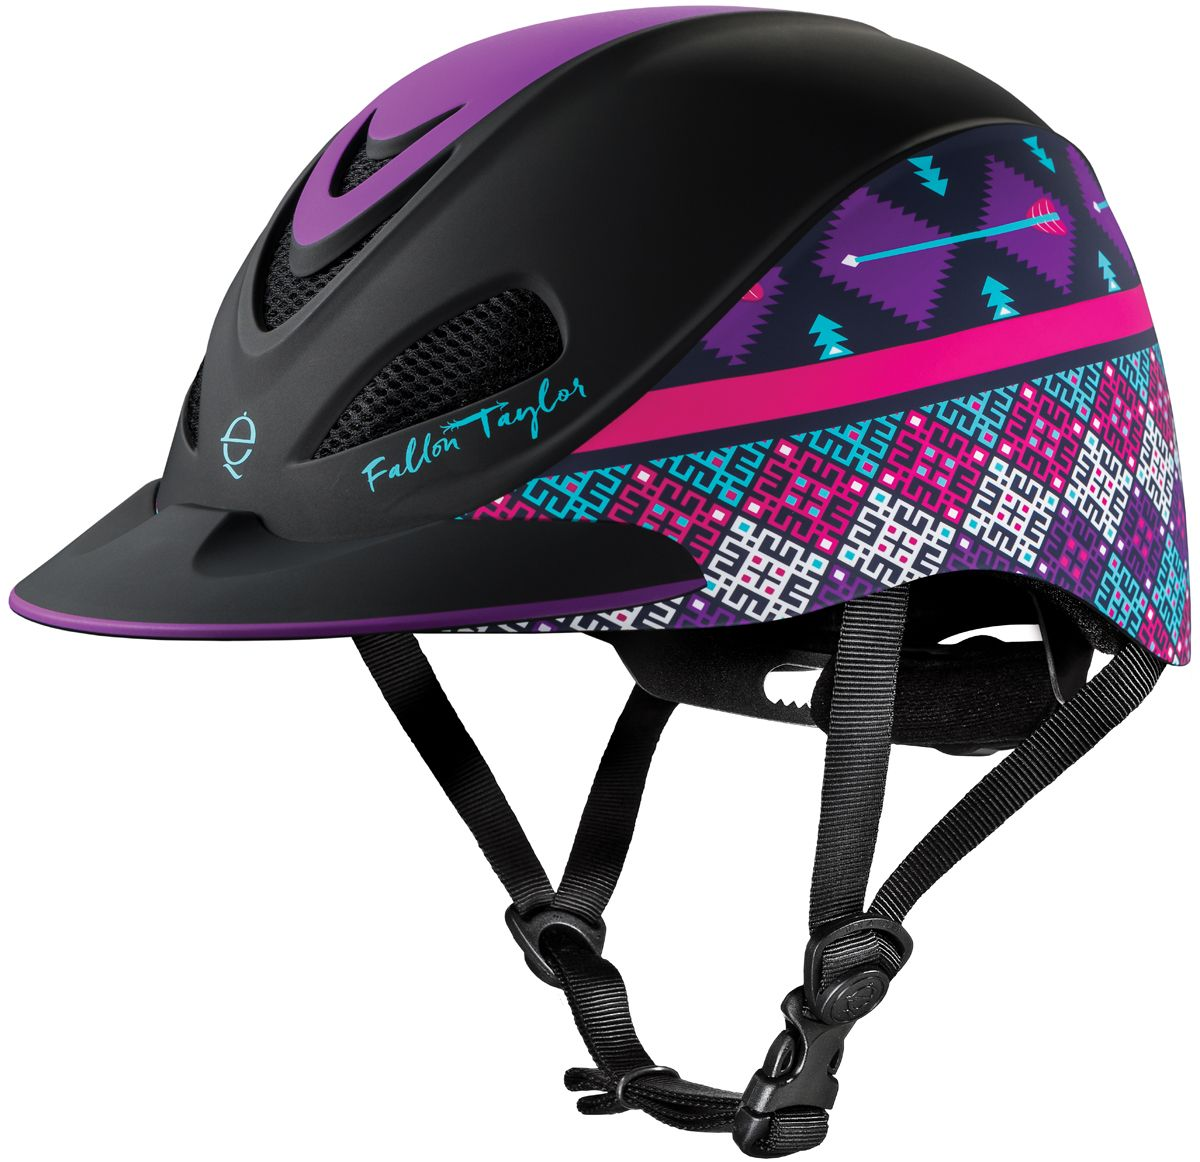 I Didn T Know This Helmet Existed Minden Fallon Taylor Riding Helmets Es Equestrian